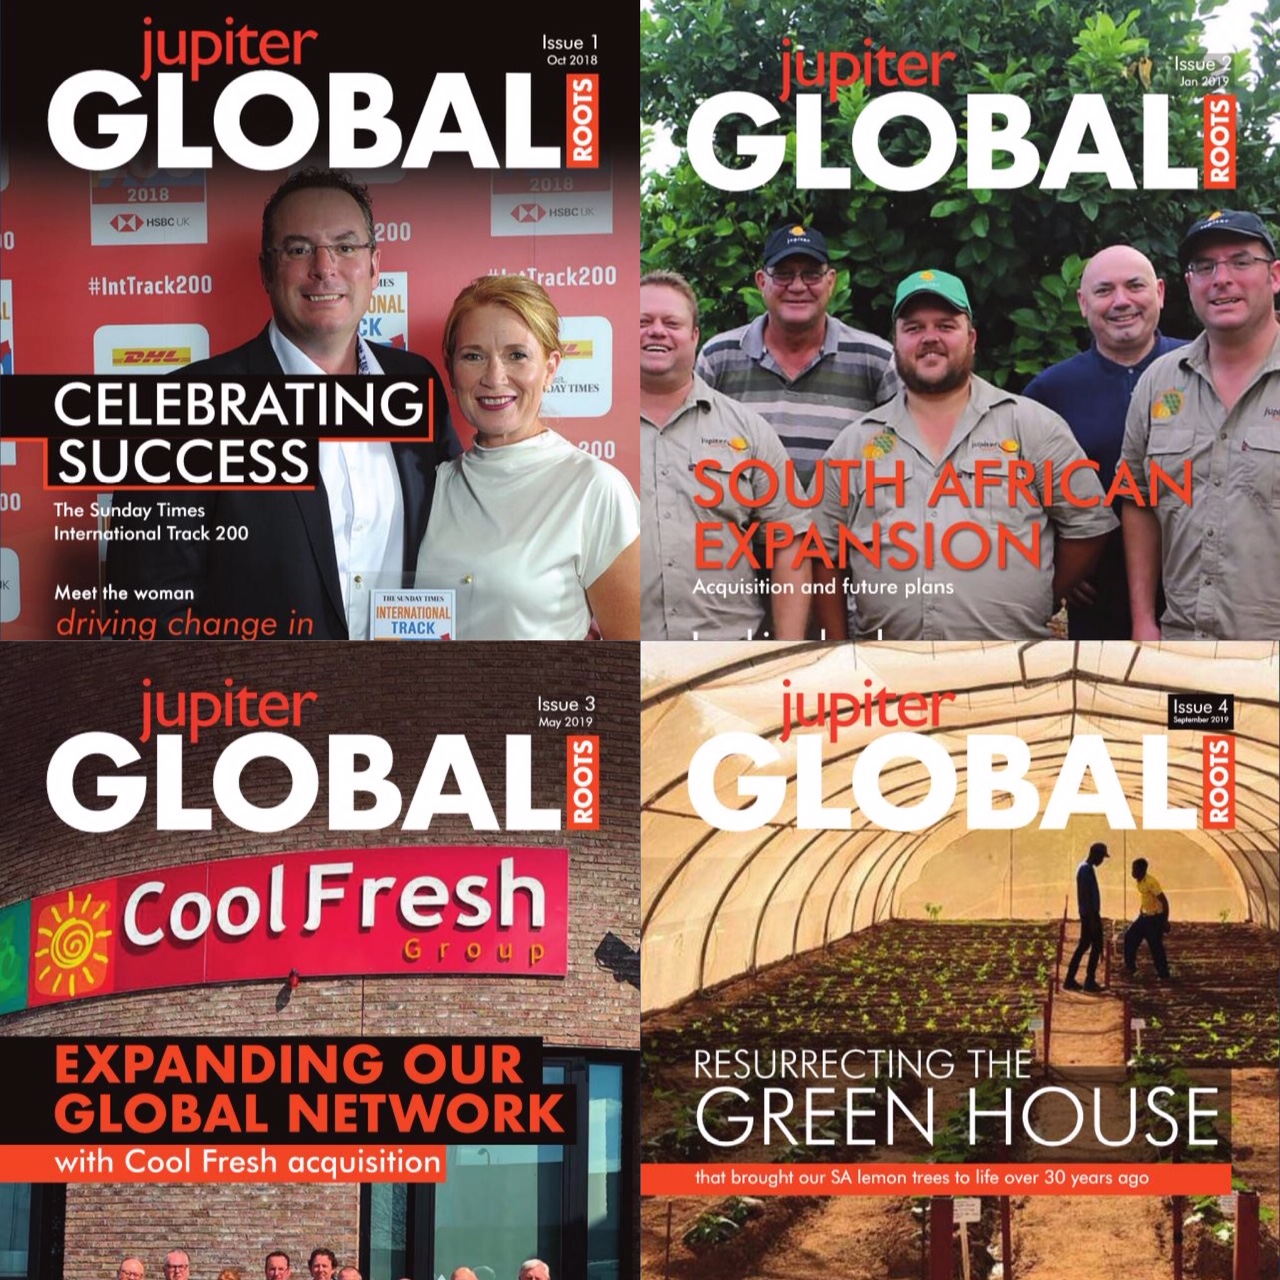 Jupiter corporate magazine Global Roots available soon